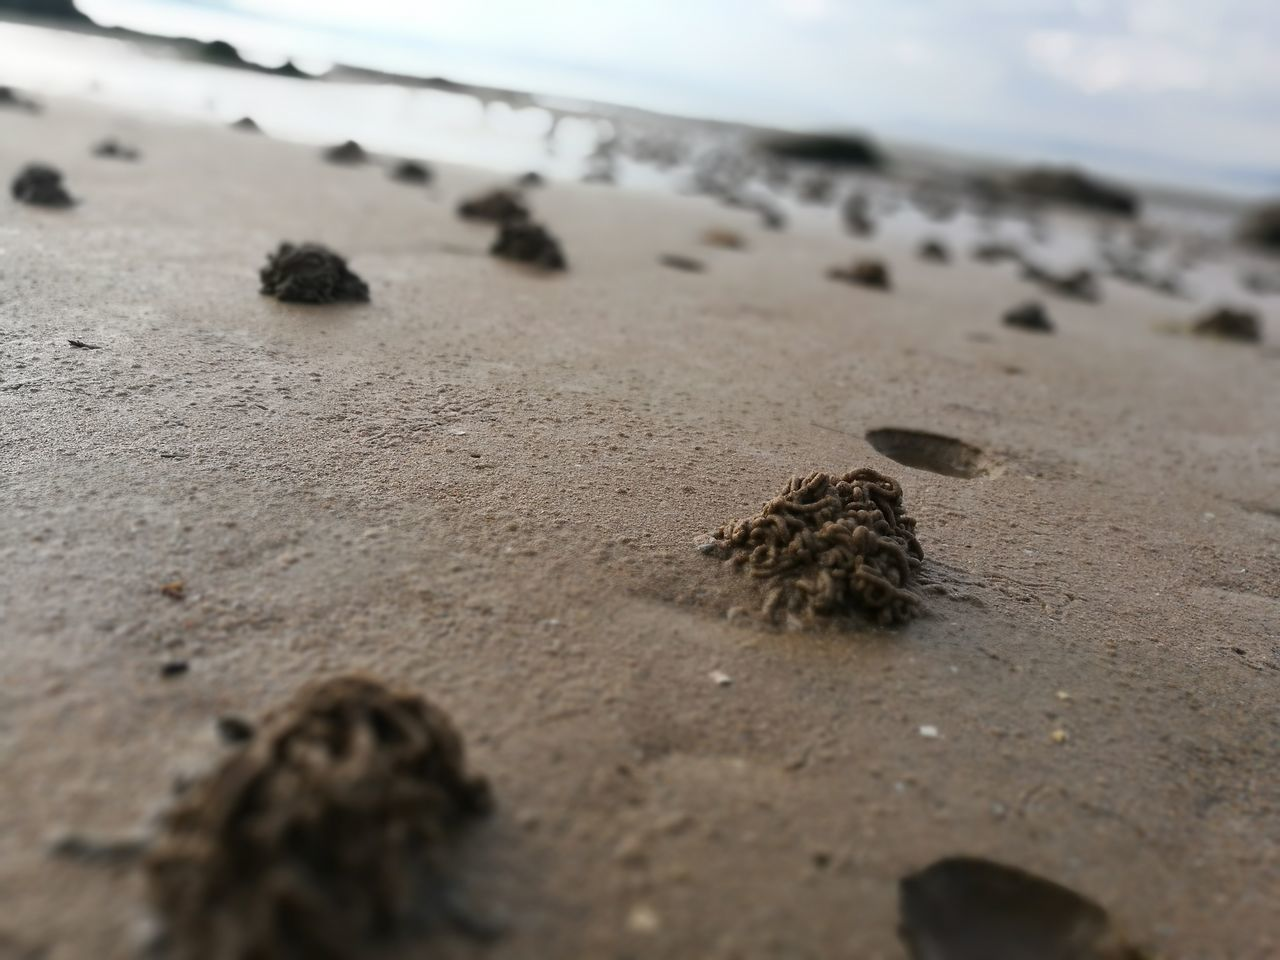 sand, beach, shore, nature, selective focus, outdoors, day, sky, no people, tranquility, beauty in nature, sea, close-up, sand dune, horizon over water, animal themes